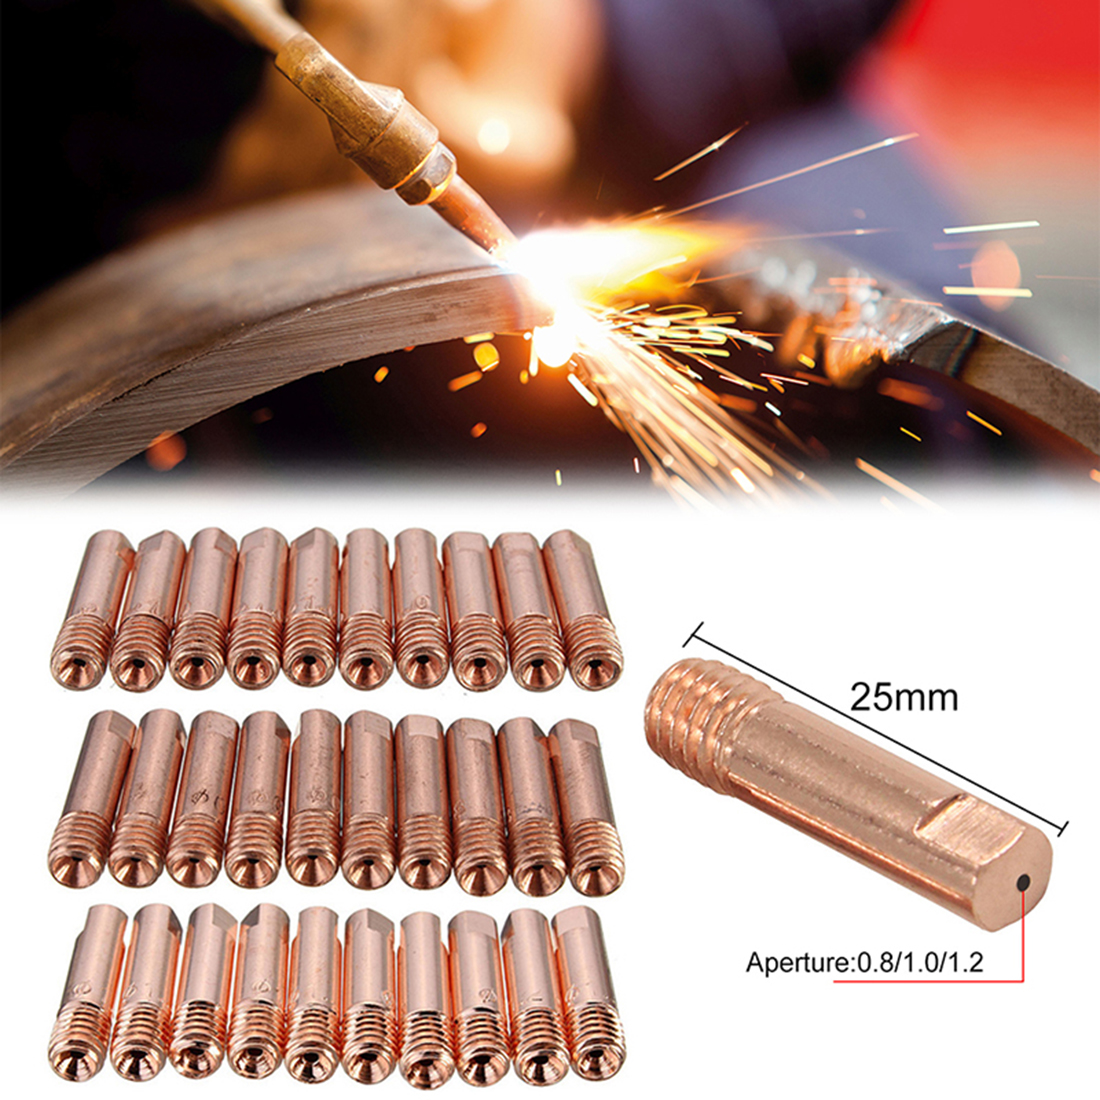 10pcs MB-15AK M6*25mm MIG/MAG Welding Torch Contact Tip Gas Nozzle 0.8/1.0/1.2mm Mig Welding  Accessories Torch Contact Tip